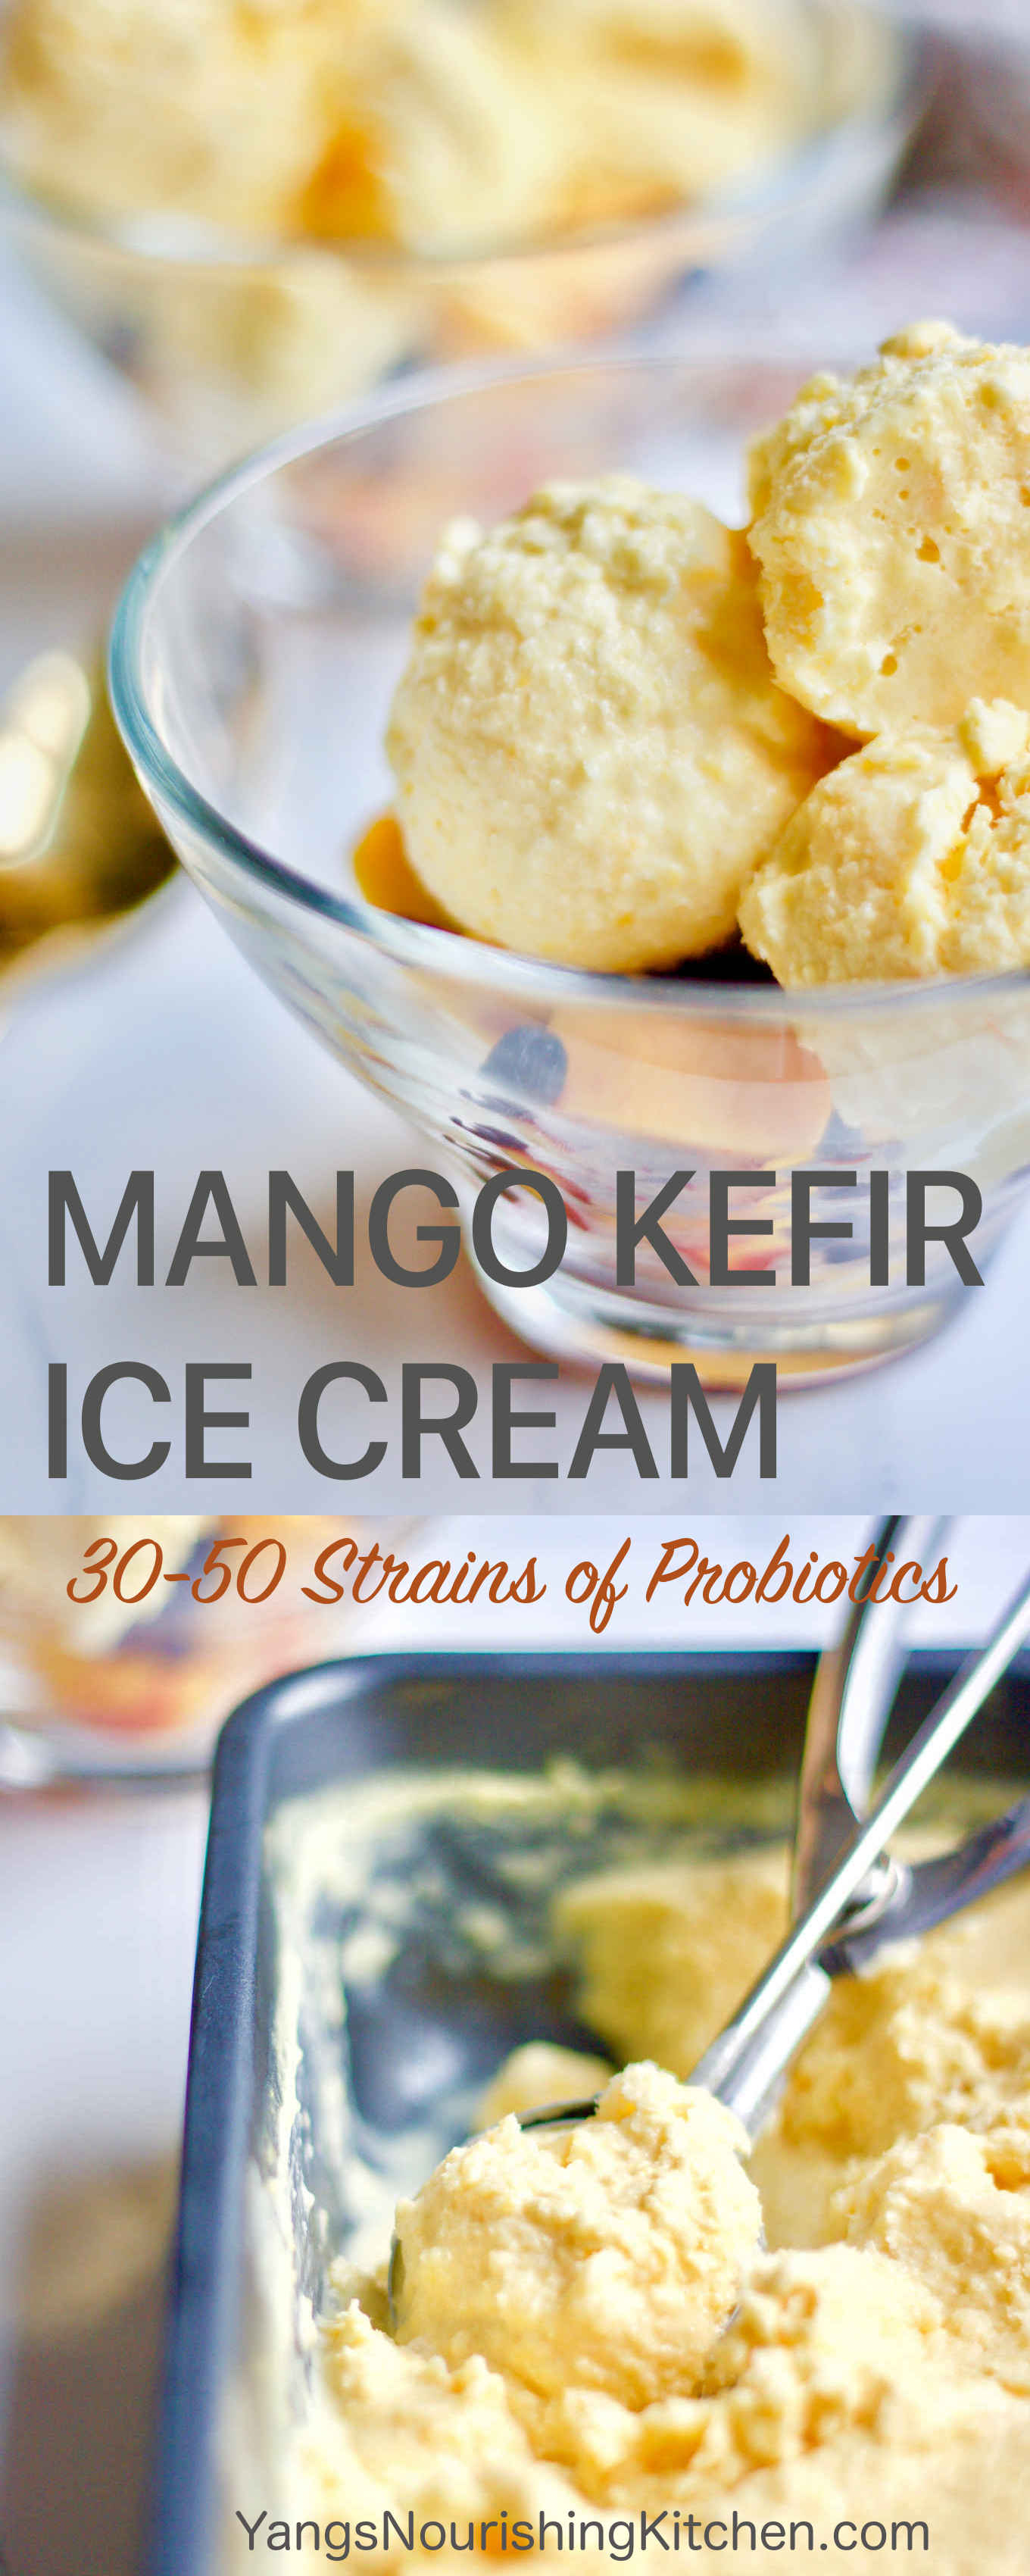 {Fermented | Video on Blog} You will love this mango kefir ice cream for the probiotic benefits. Real milk kefir grains contain 30 to 50 strains of probiotic bacteria and yeast combined. If you are looking for a summer dessert to make with your milk kefir grains, this mango kefir ice cream is a tasty treat and uses only 4 ingredients. Mango and kefir are a perfect match in flavour. I will also show you some tips for achieving the best results without using an ice cream maker.